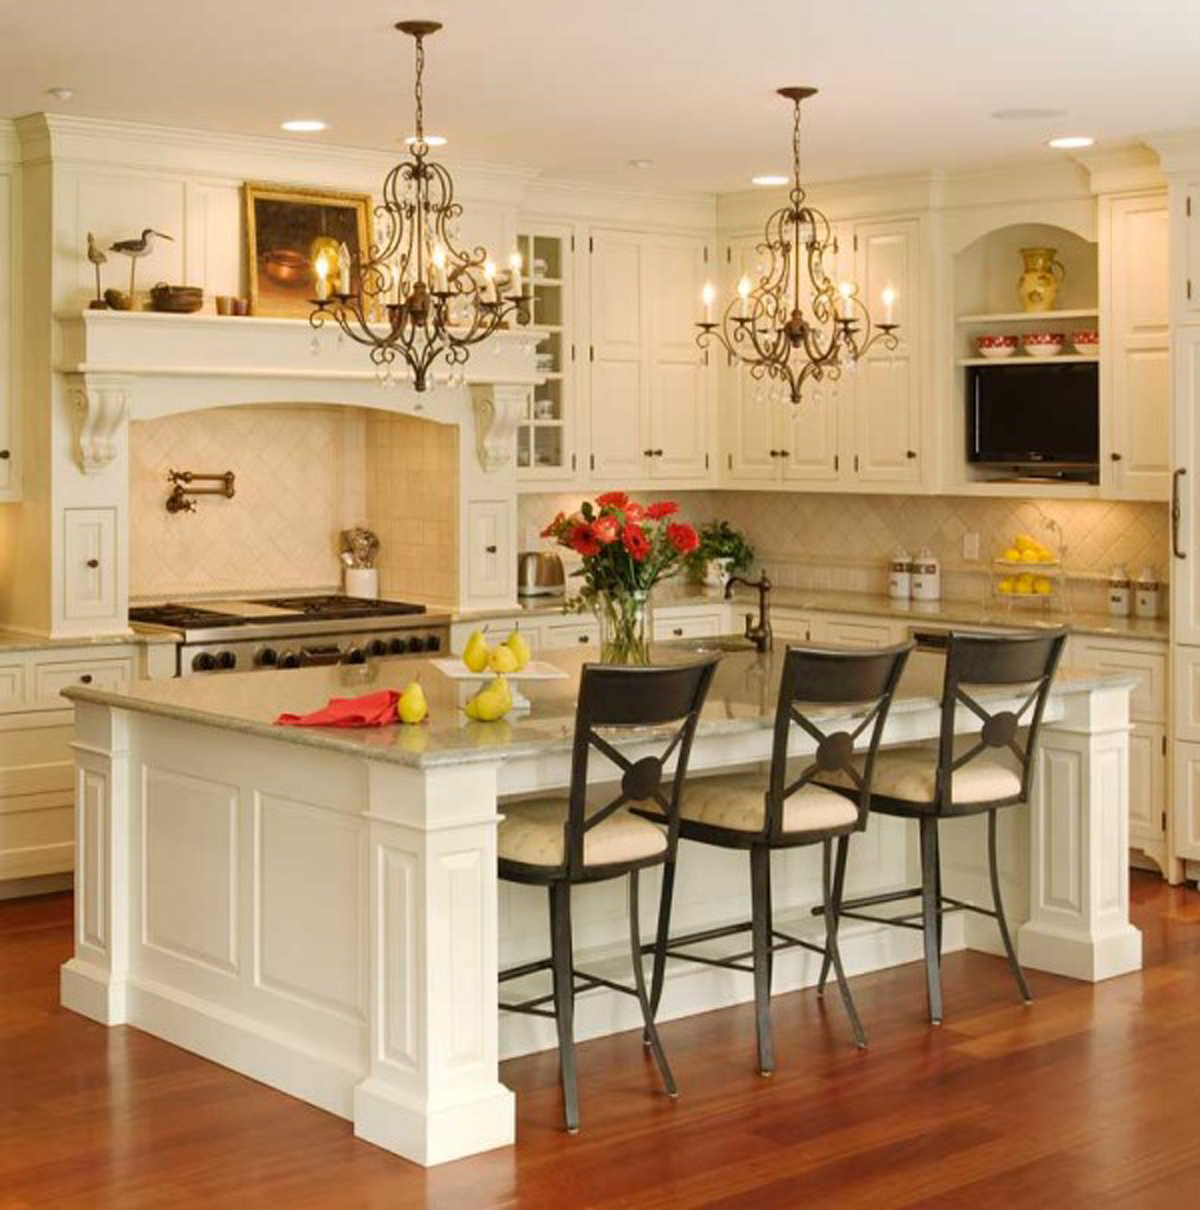 White island kitchen backsplash ideas for Kitchen ideas island